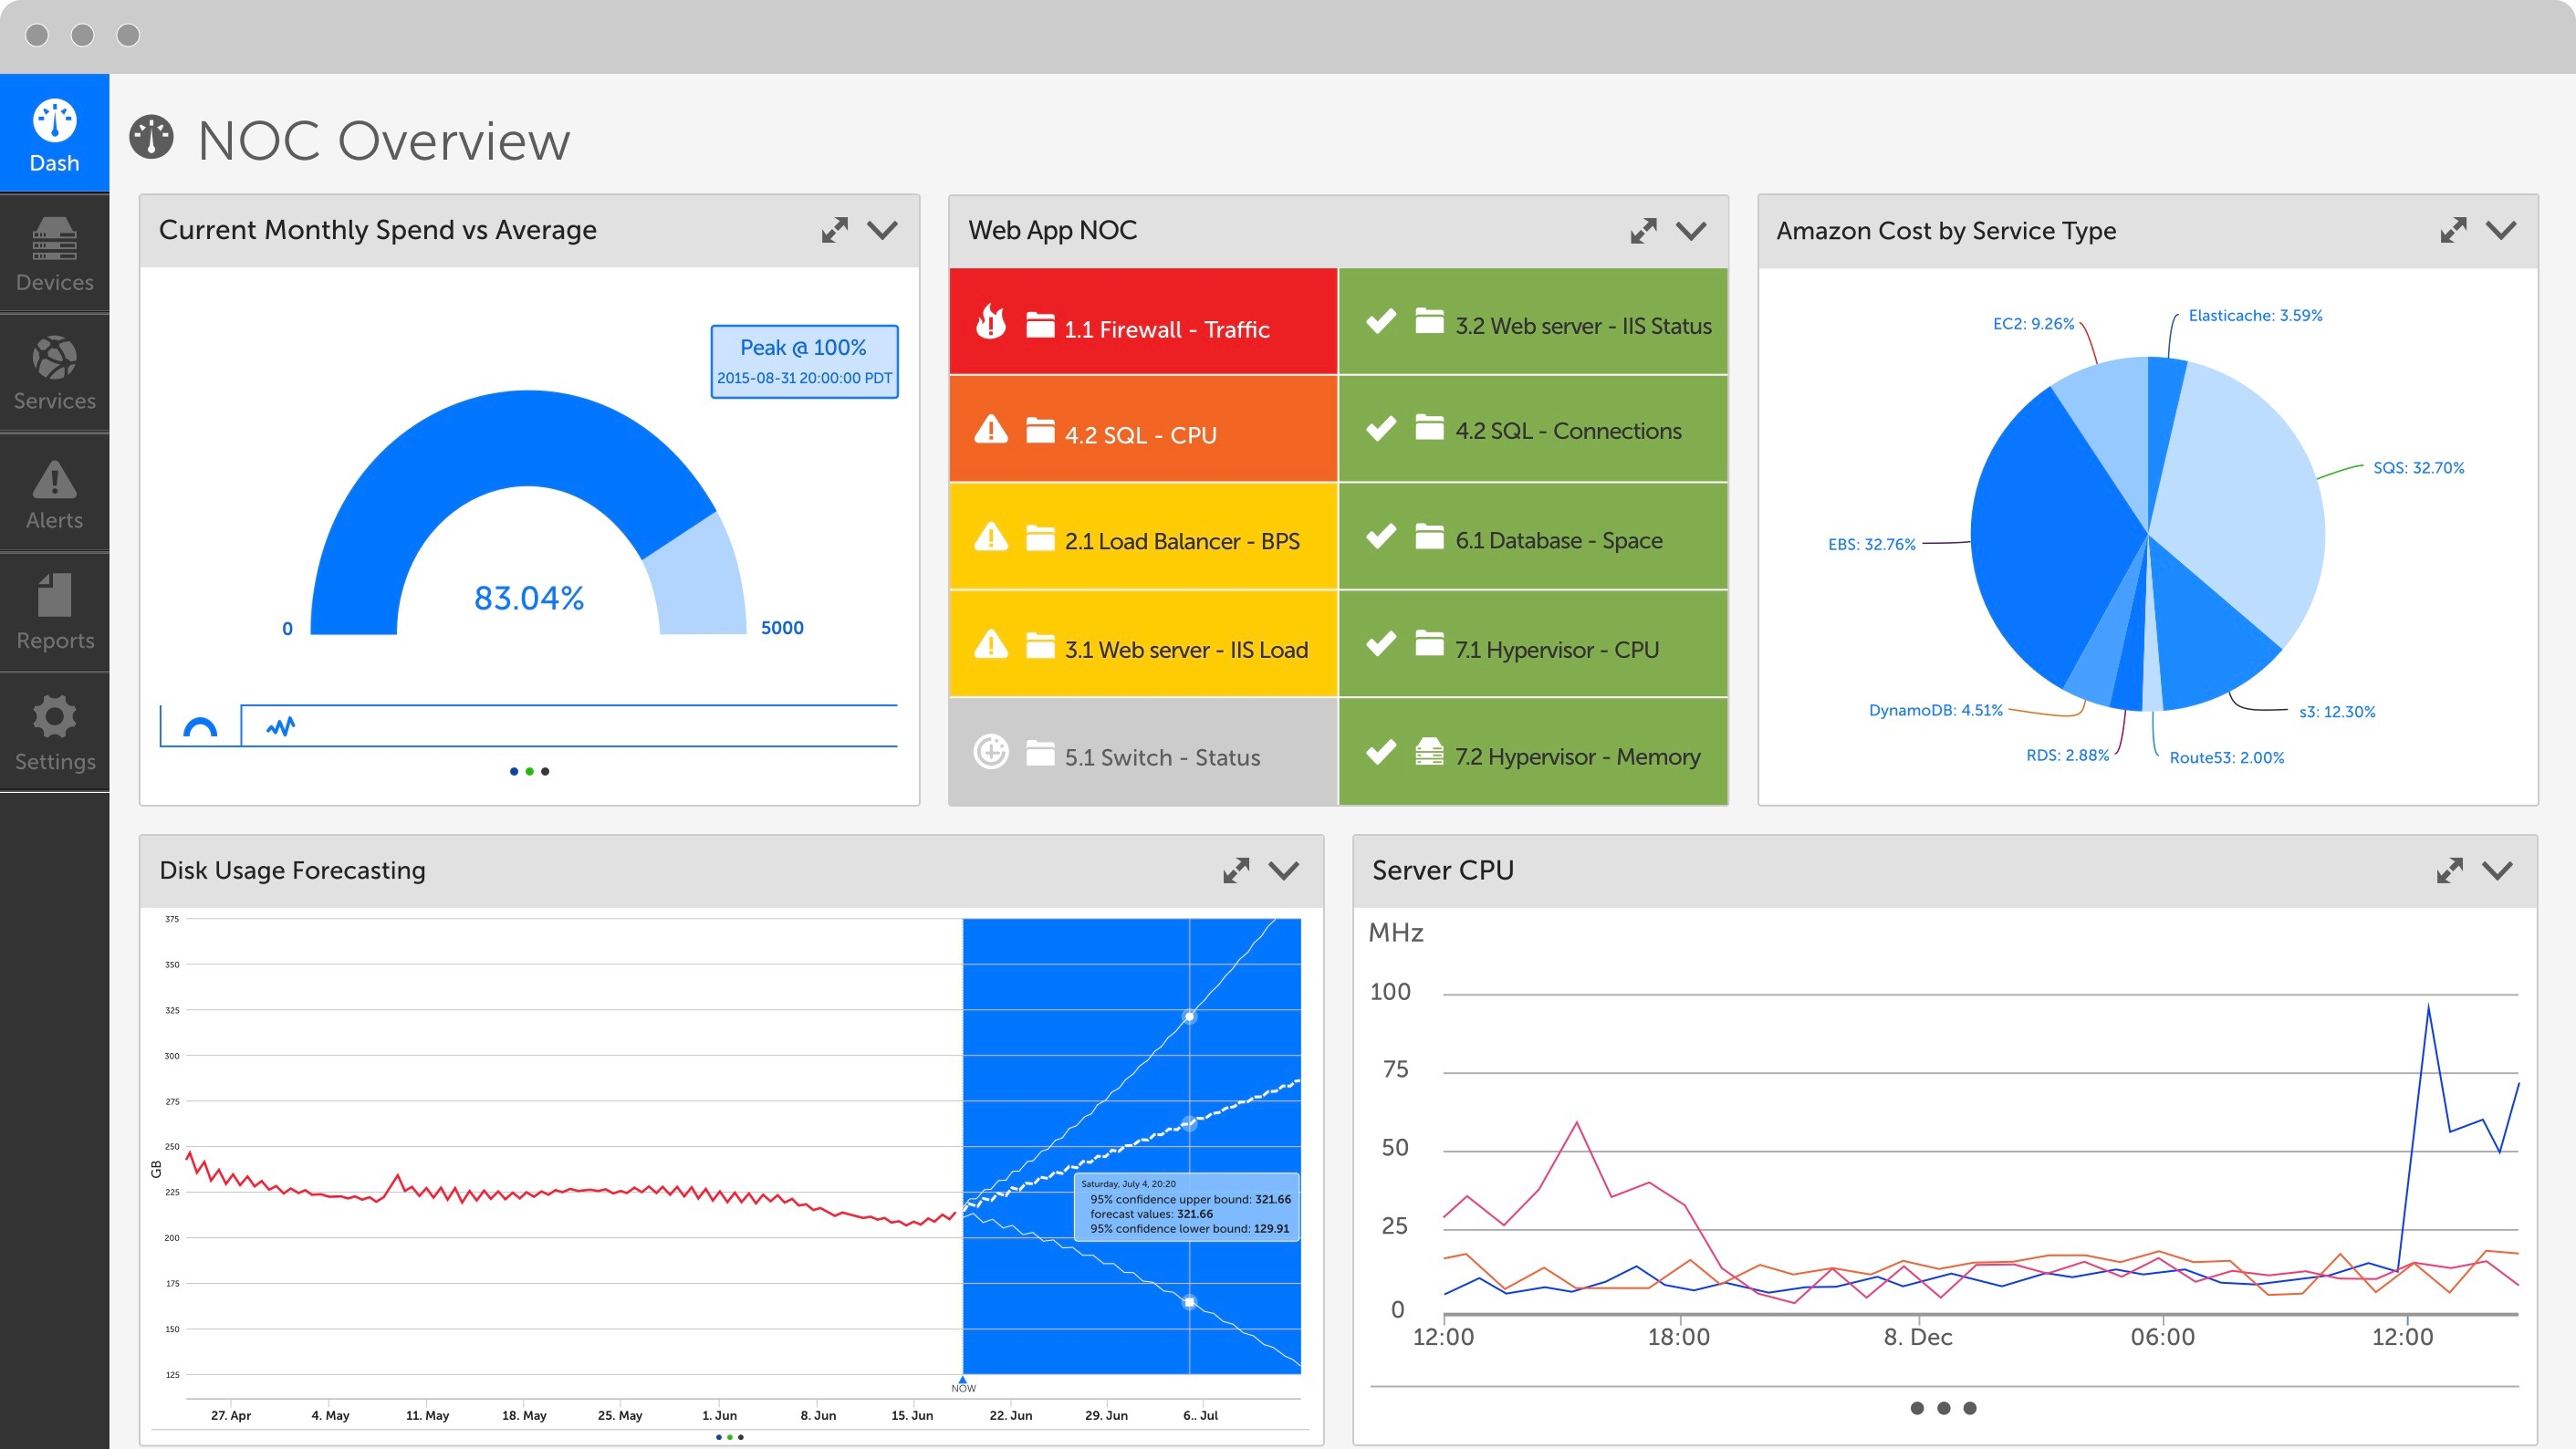 LogicMonitor NOC Overview Dashboard